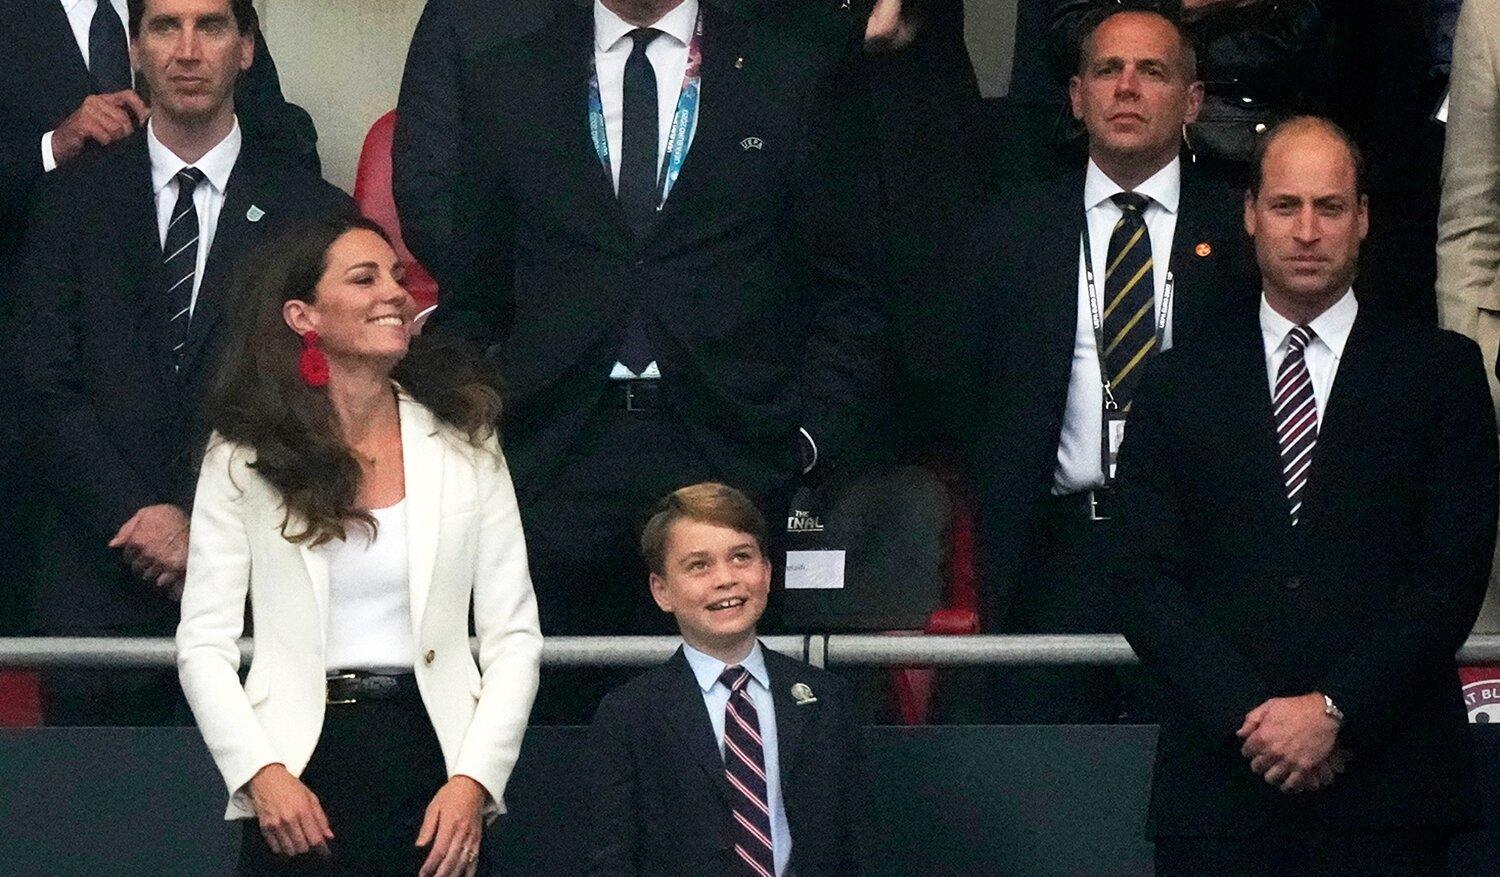 Prince George Joins Dad Prince William to Cheer on England's Soccer Team in Euro 2020 Final